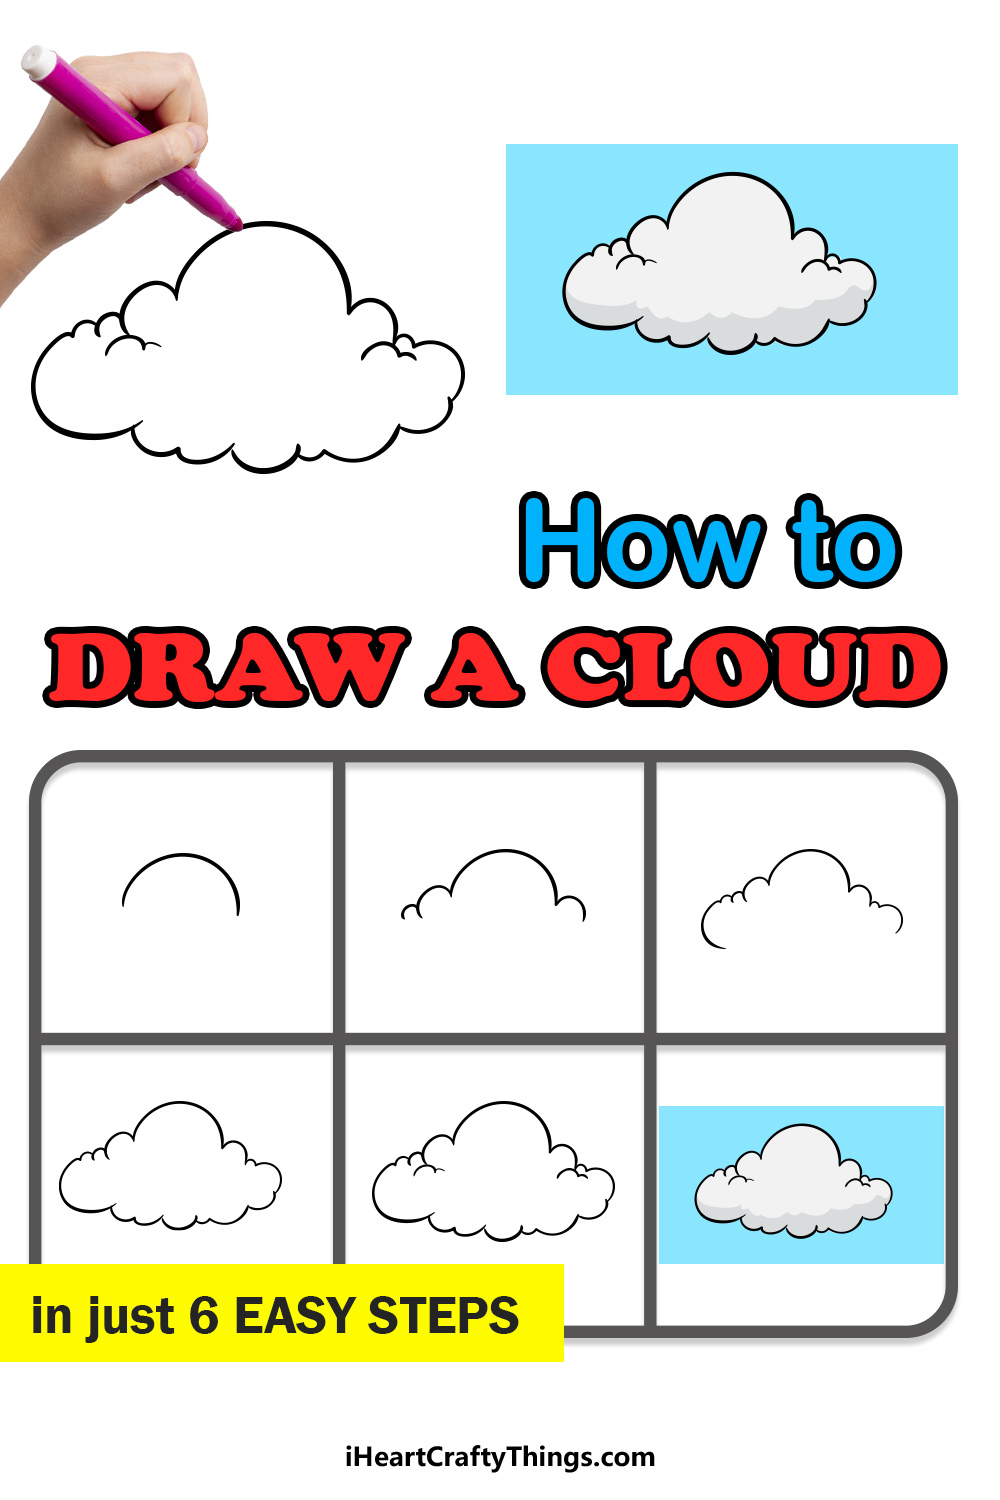 how to draw a cloud in 6 easy steps